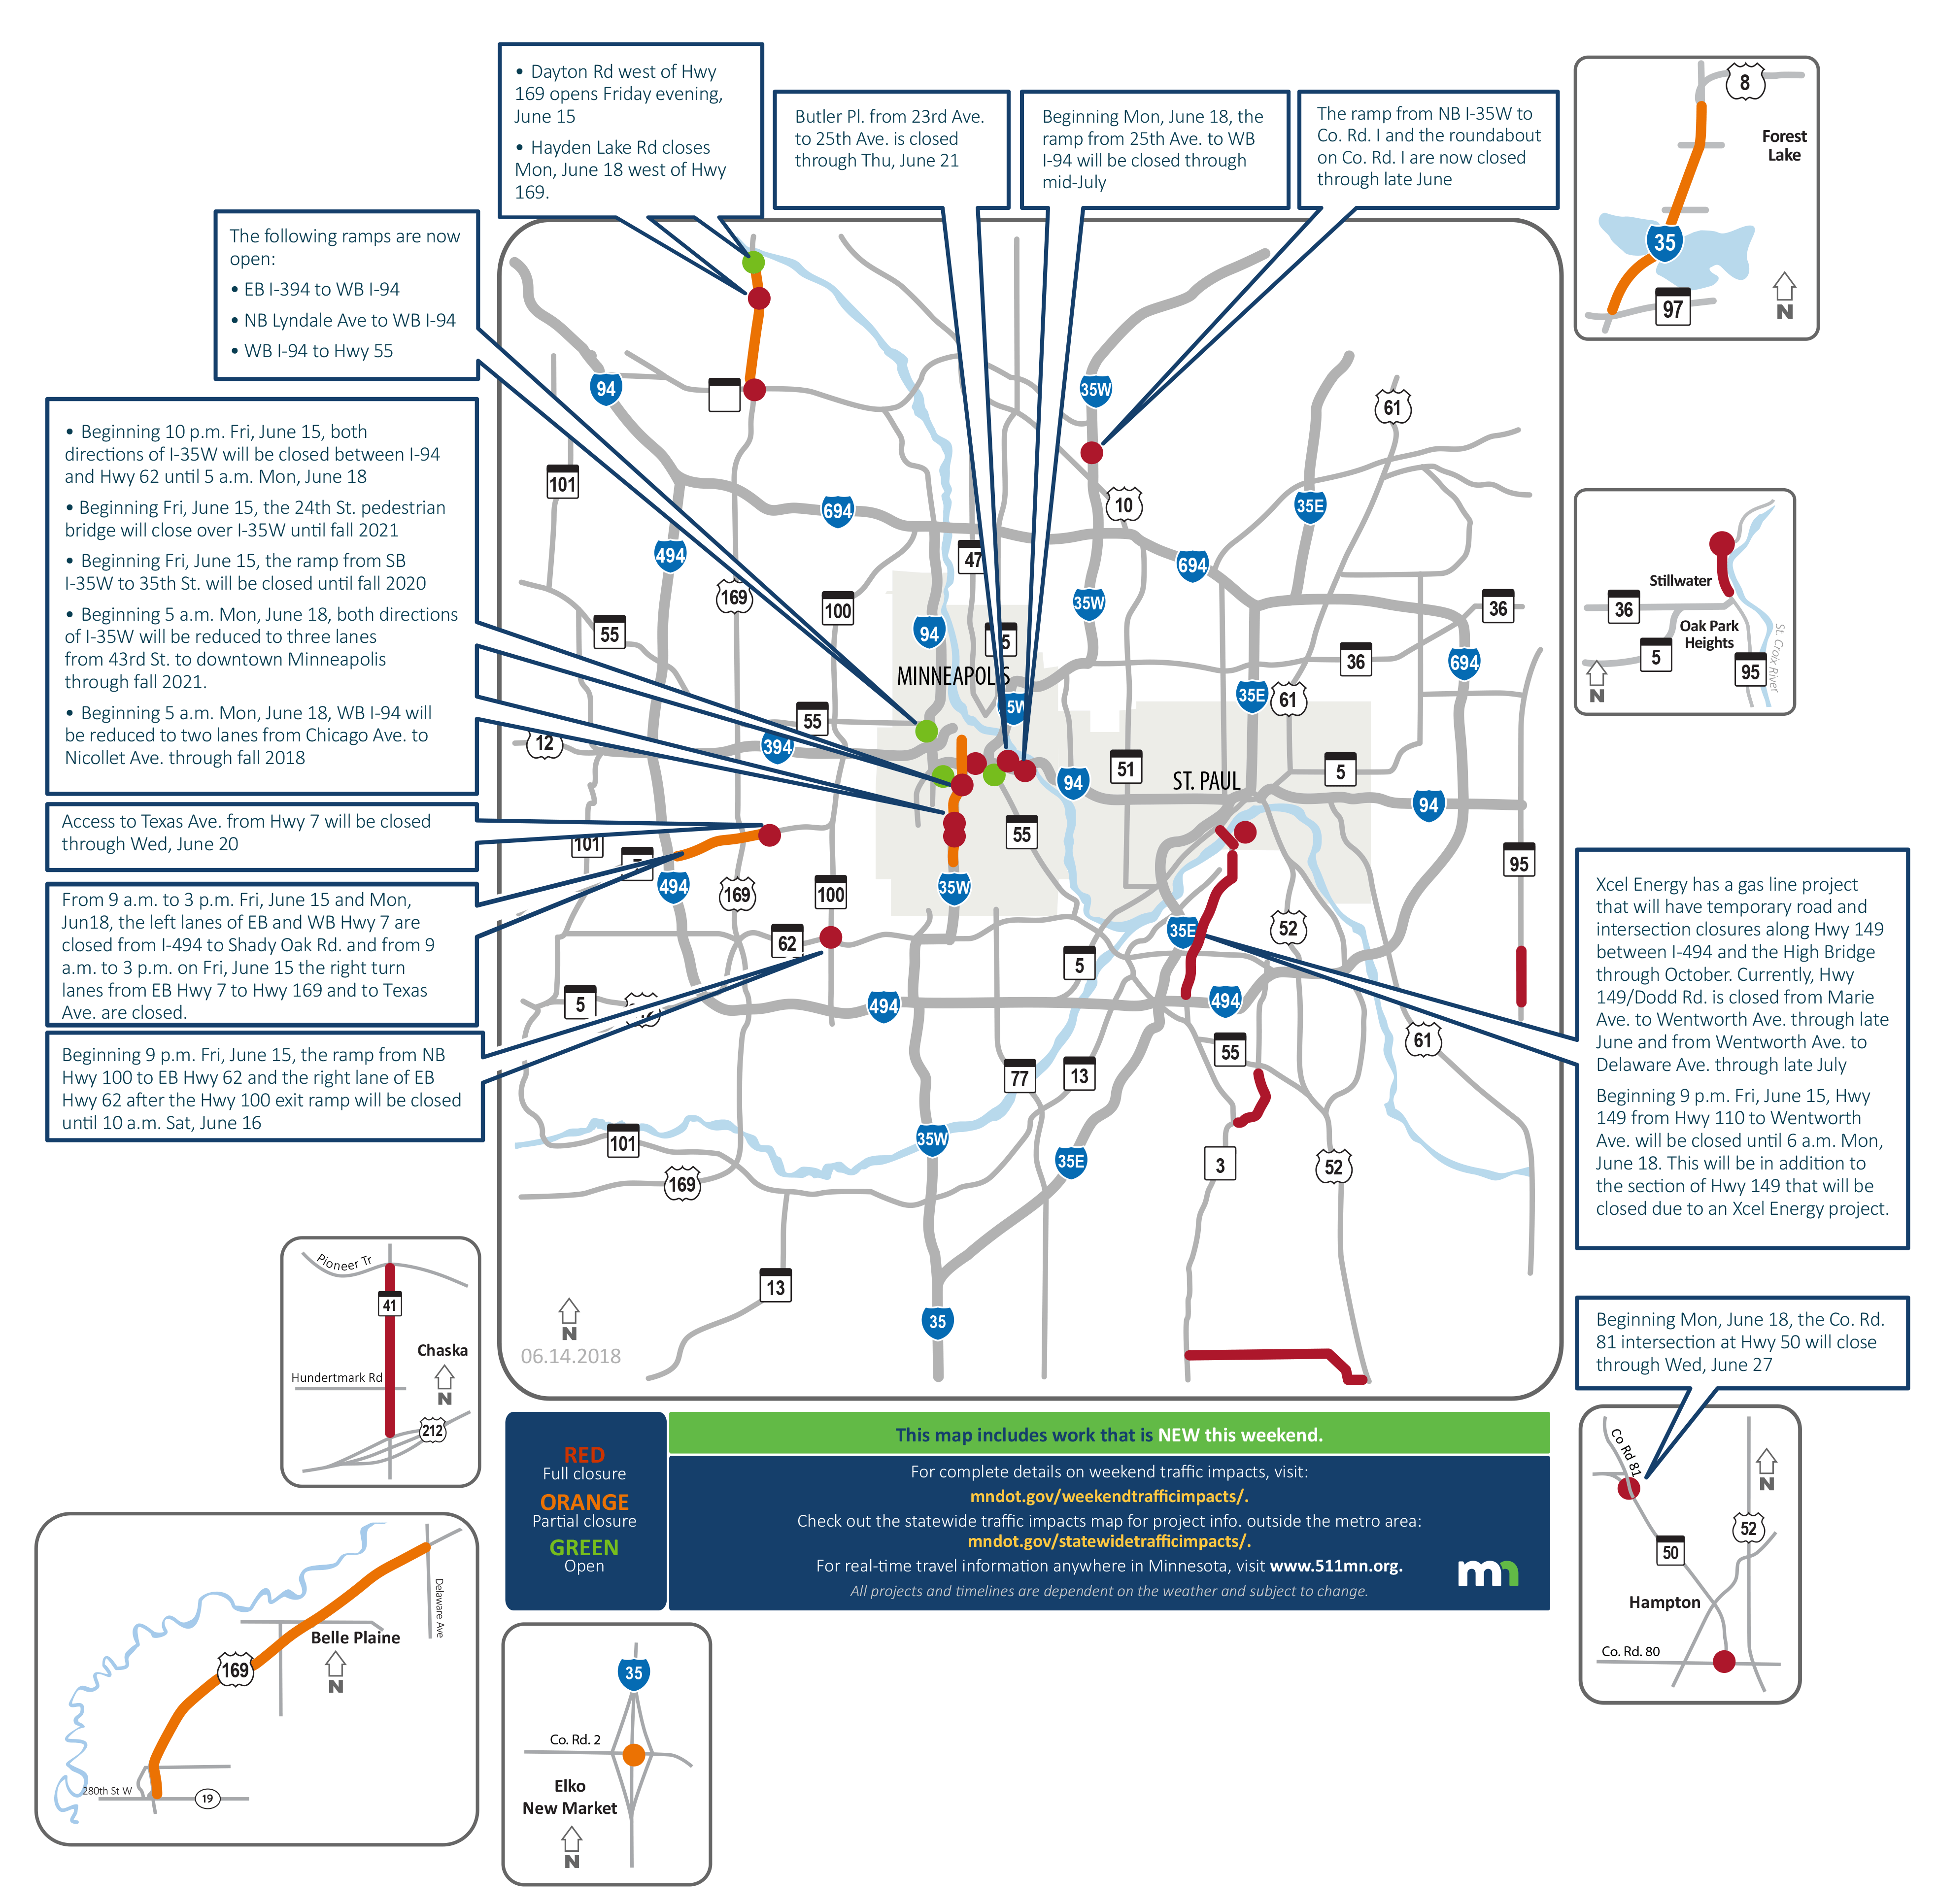 A map showing the current weekend traffic impacts